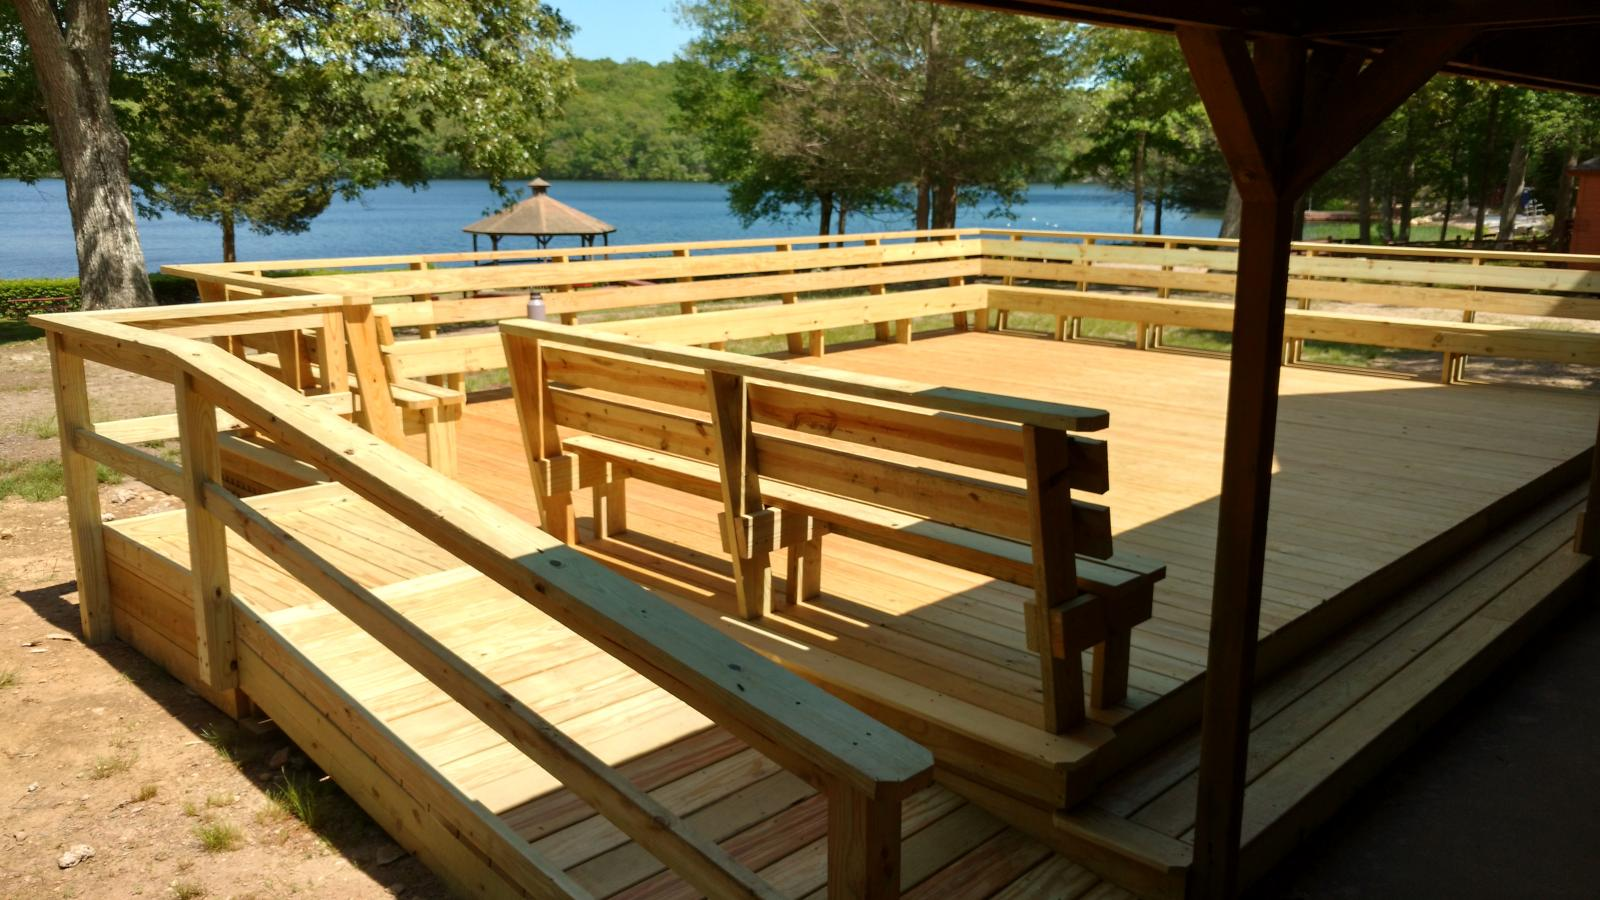 New deck on Pavilion June 2017